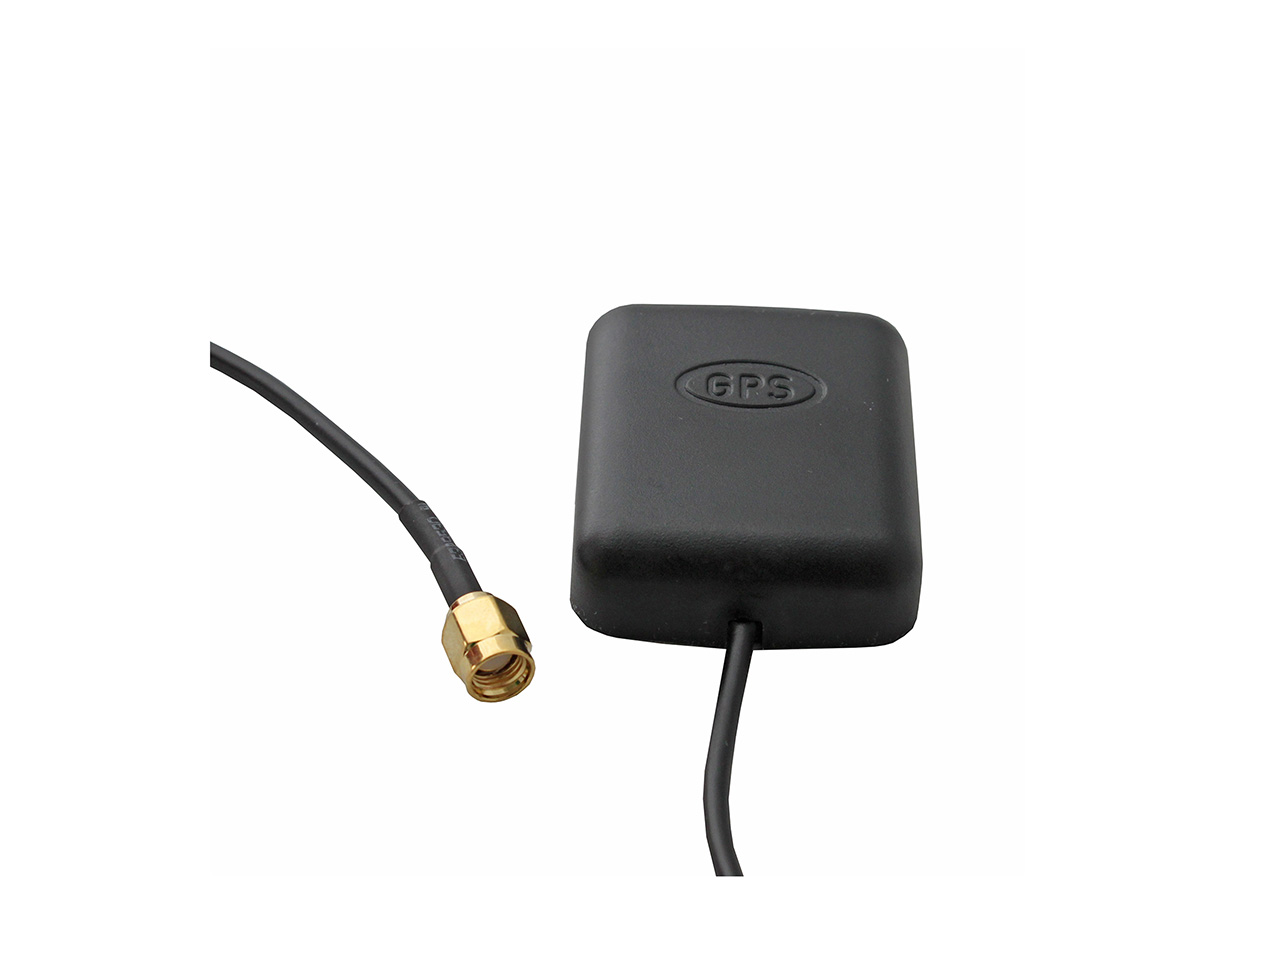 ALG10X-06A-GPS Antenna for ALG10X-05A.jpg